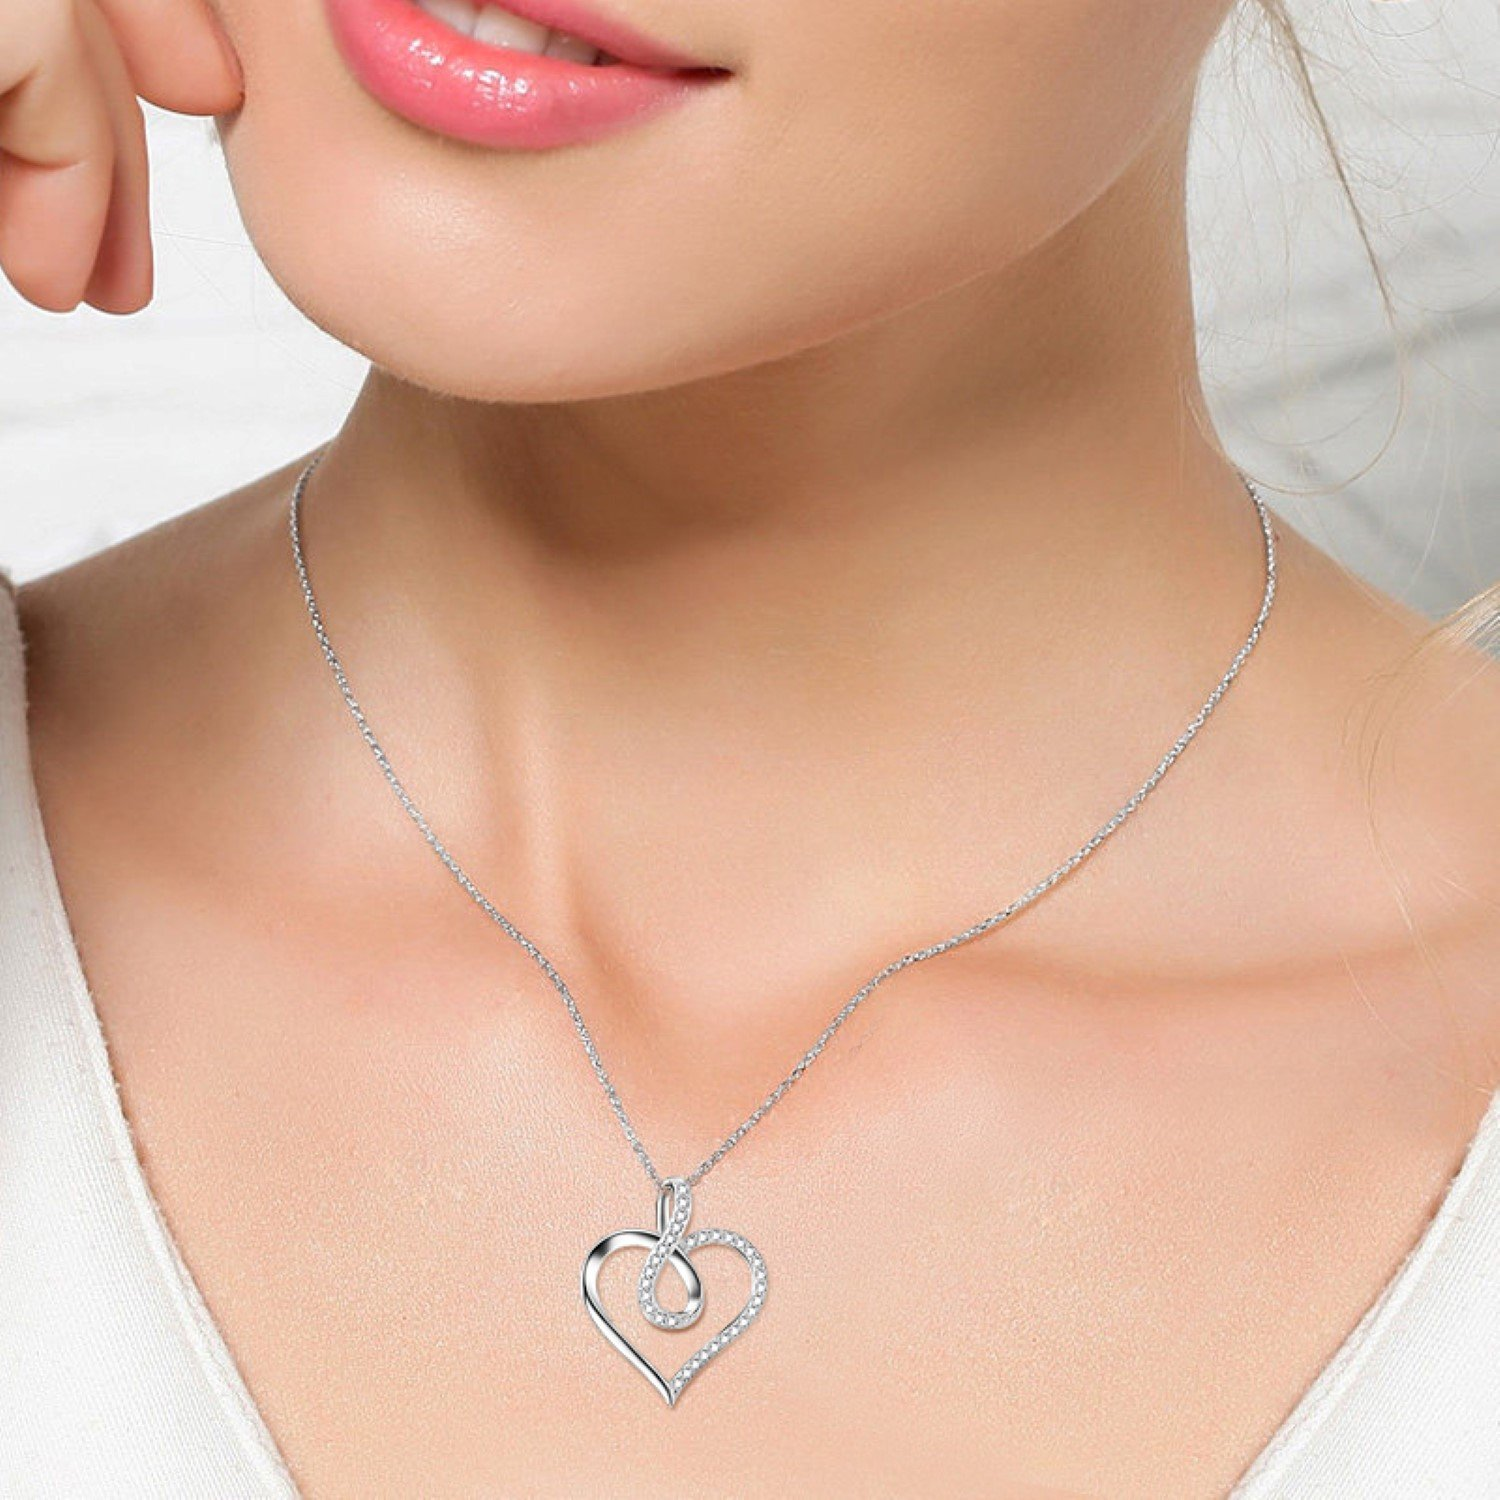 CS-DB Womens Necklaces by Silver Pendant Heart Charm Girls Infinity Love Crystal Charm Jewelry